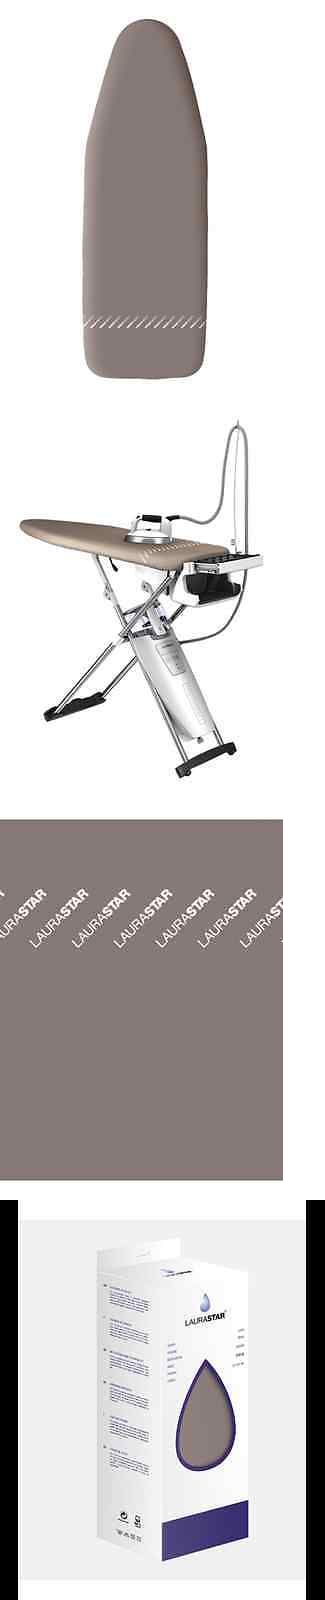 Ironing Board Covers 134734: Laurastar Mycover Taupe Ironing Board Cover -> BUY IT NOW ONLY: $69.95 on eBay!